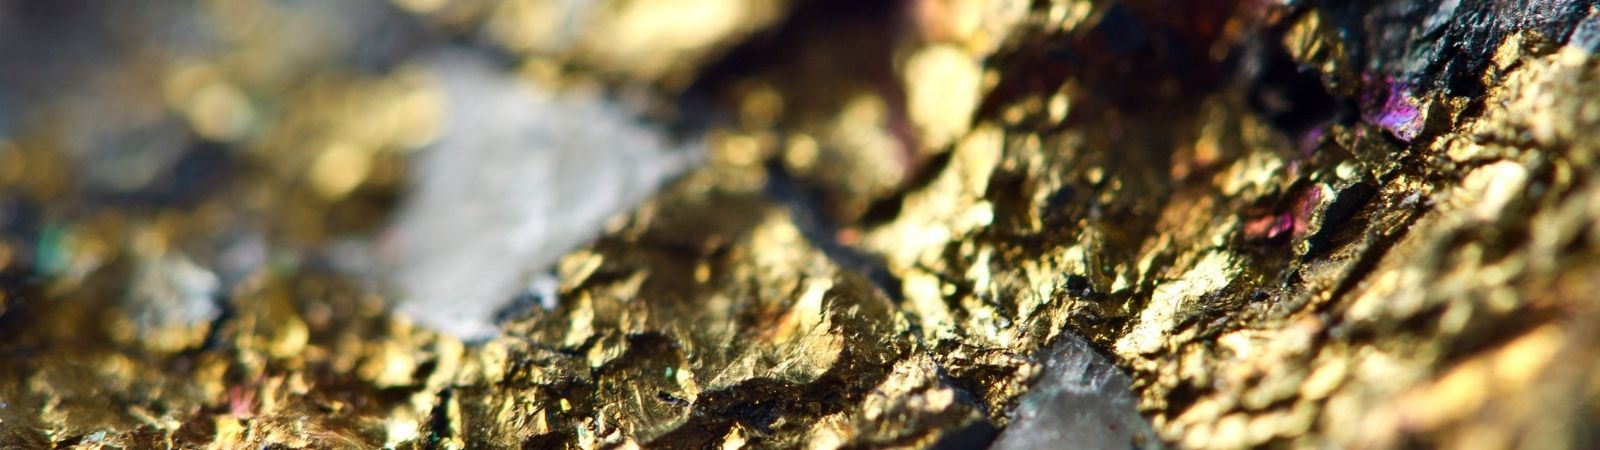 Close up of the conflict mineral gold in its raw, unrefined state mixed with dark stone.